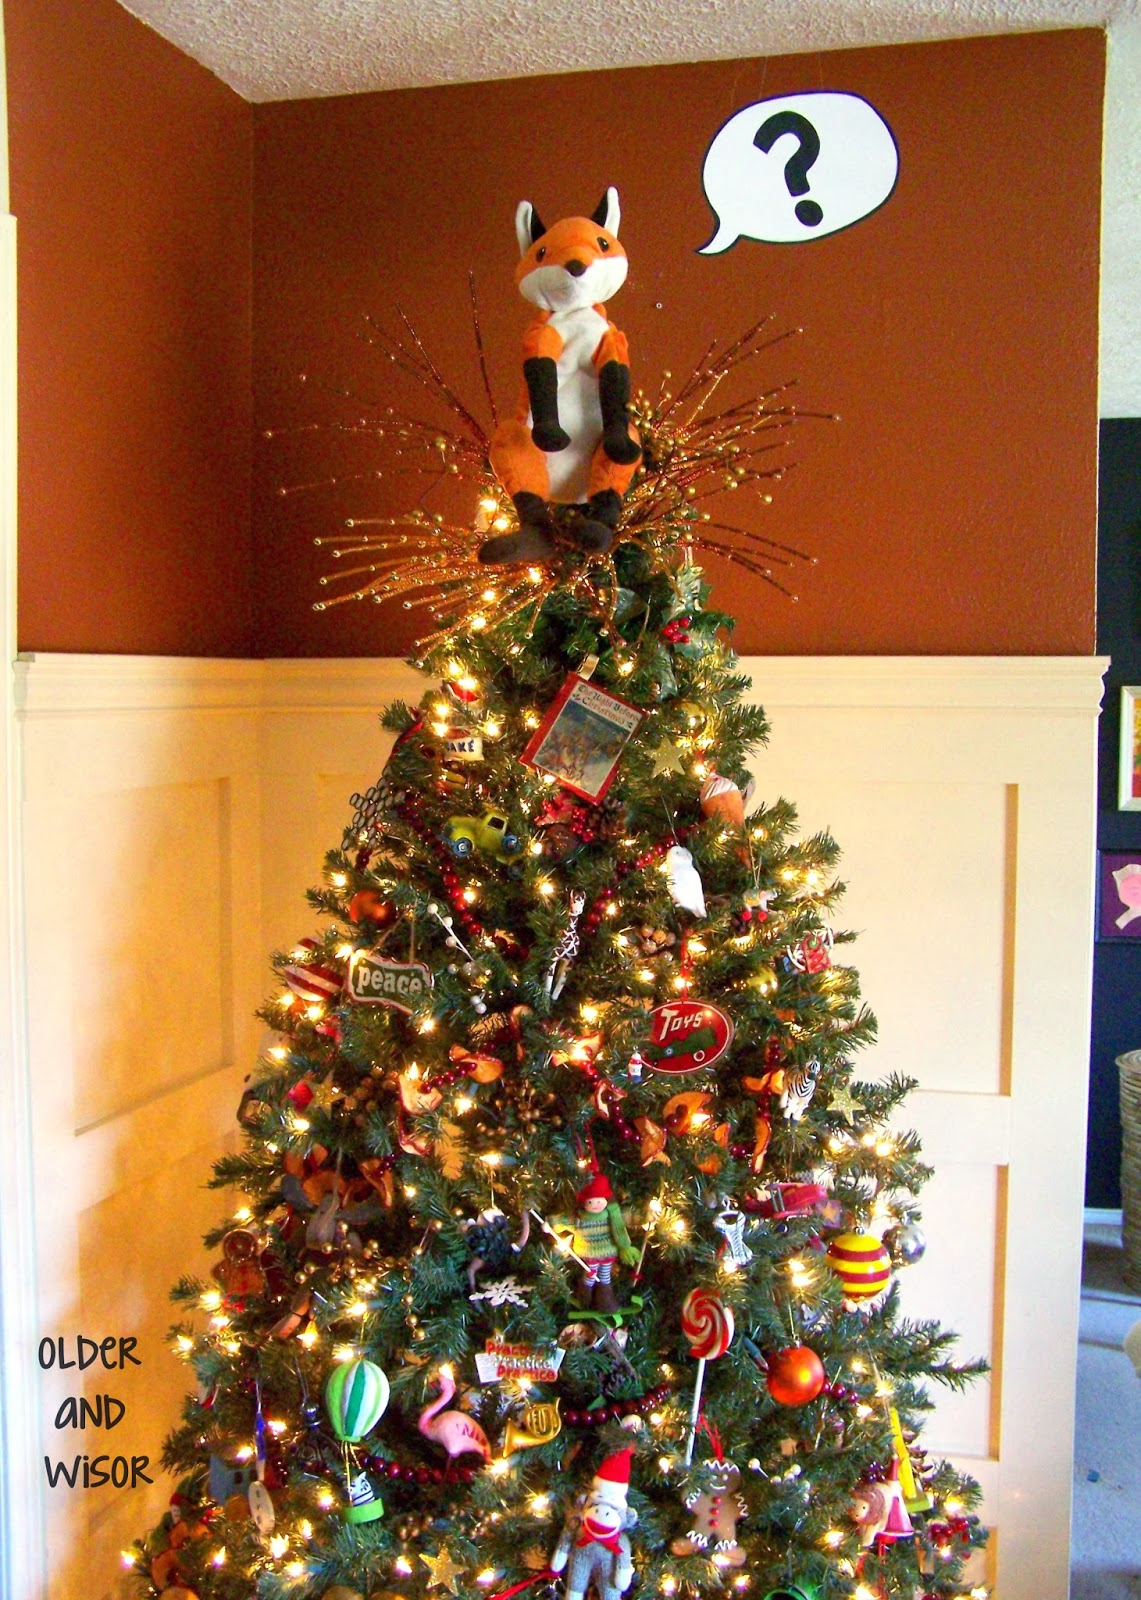 Older and wisor what does the fox say a christmas tree